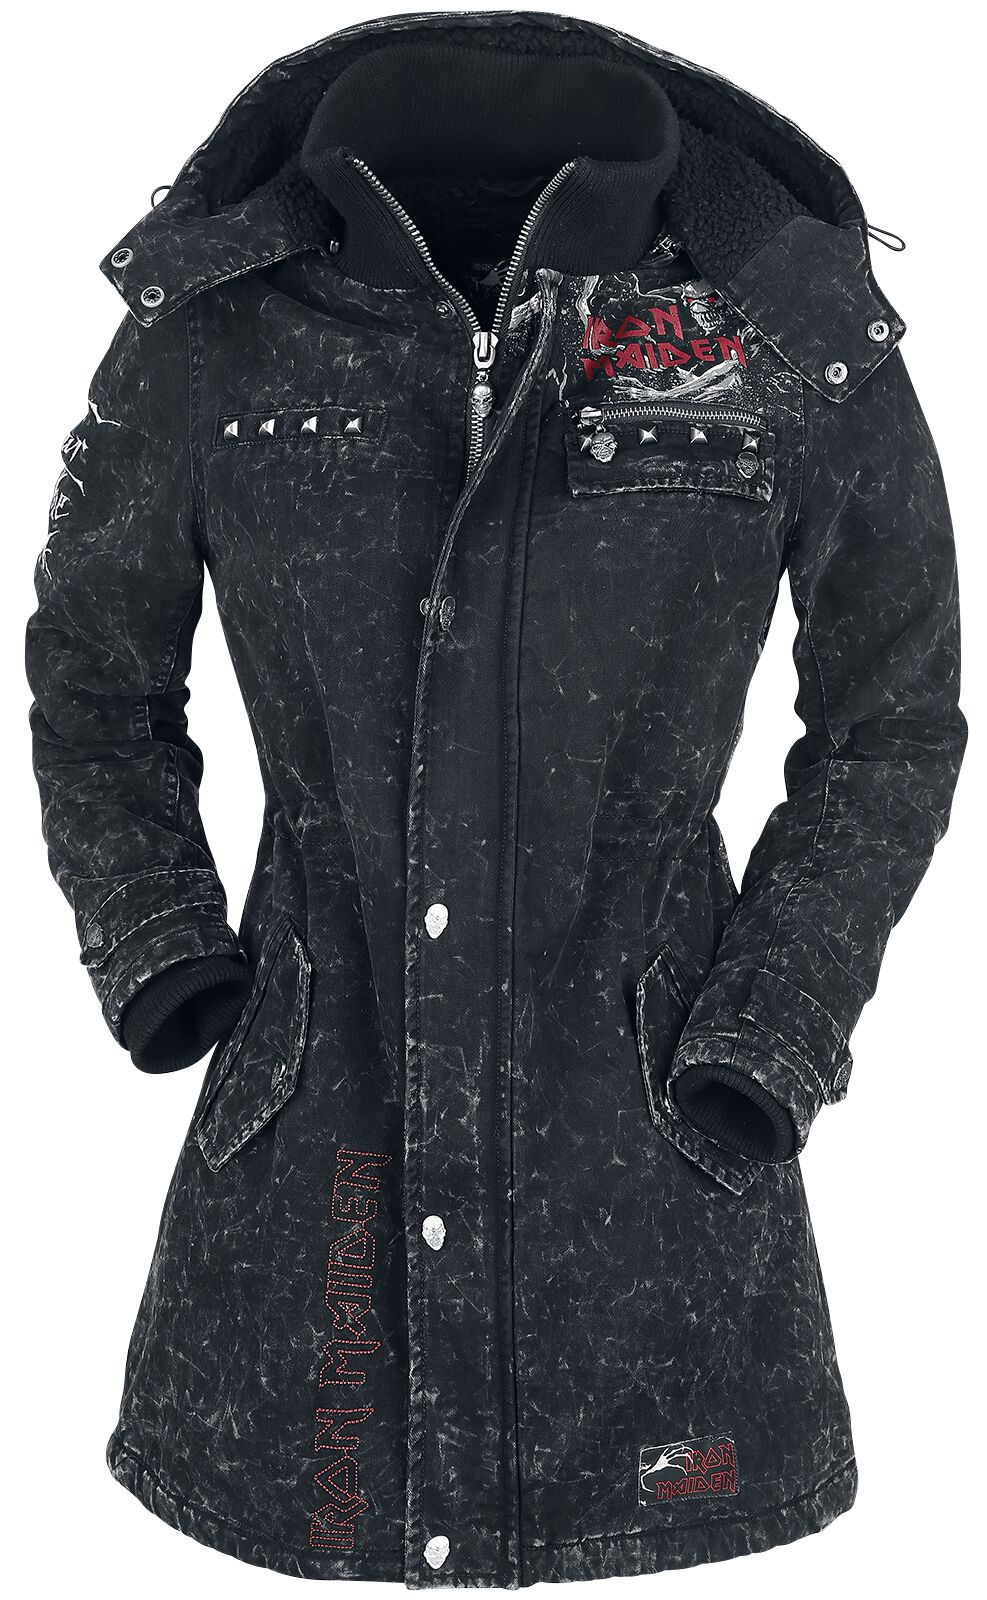 Image of   Iron Maiden EMP Signature Collection Girlie jakke mørk grå